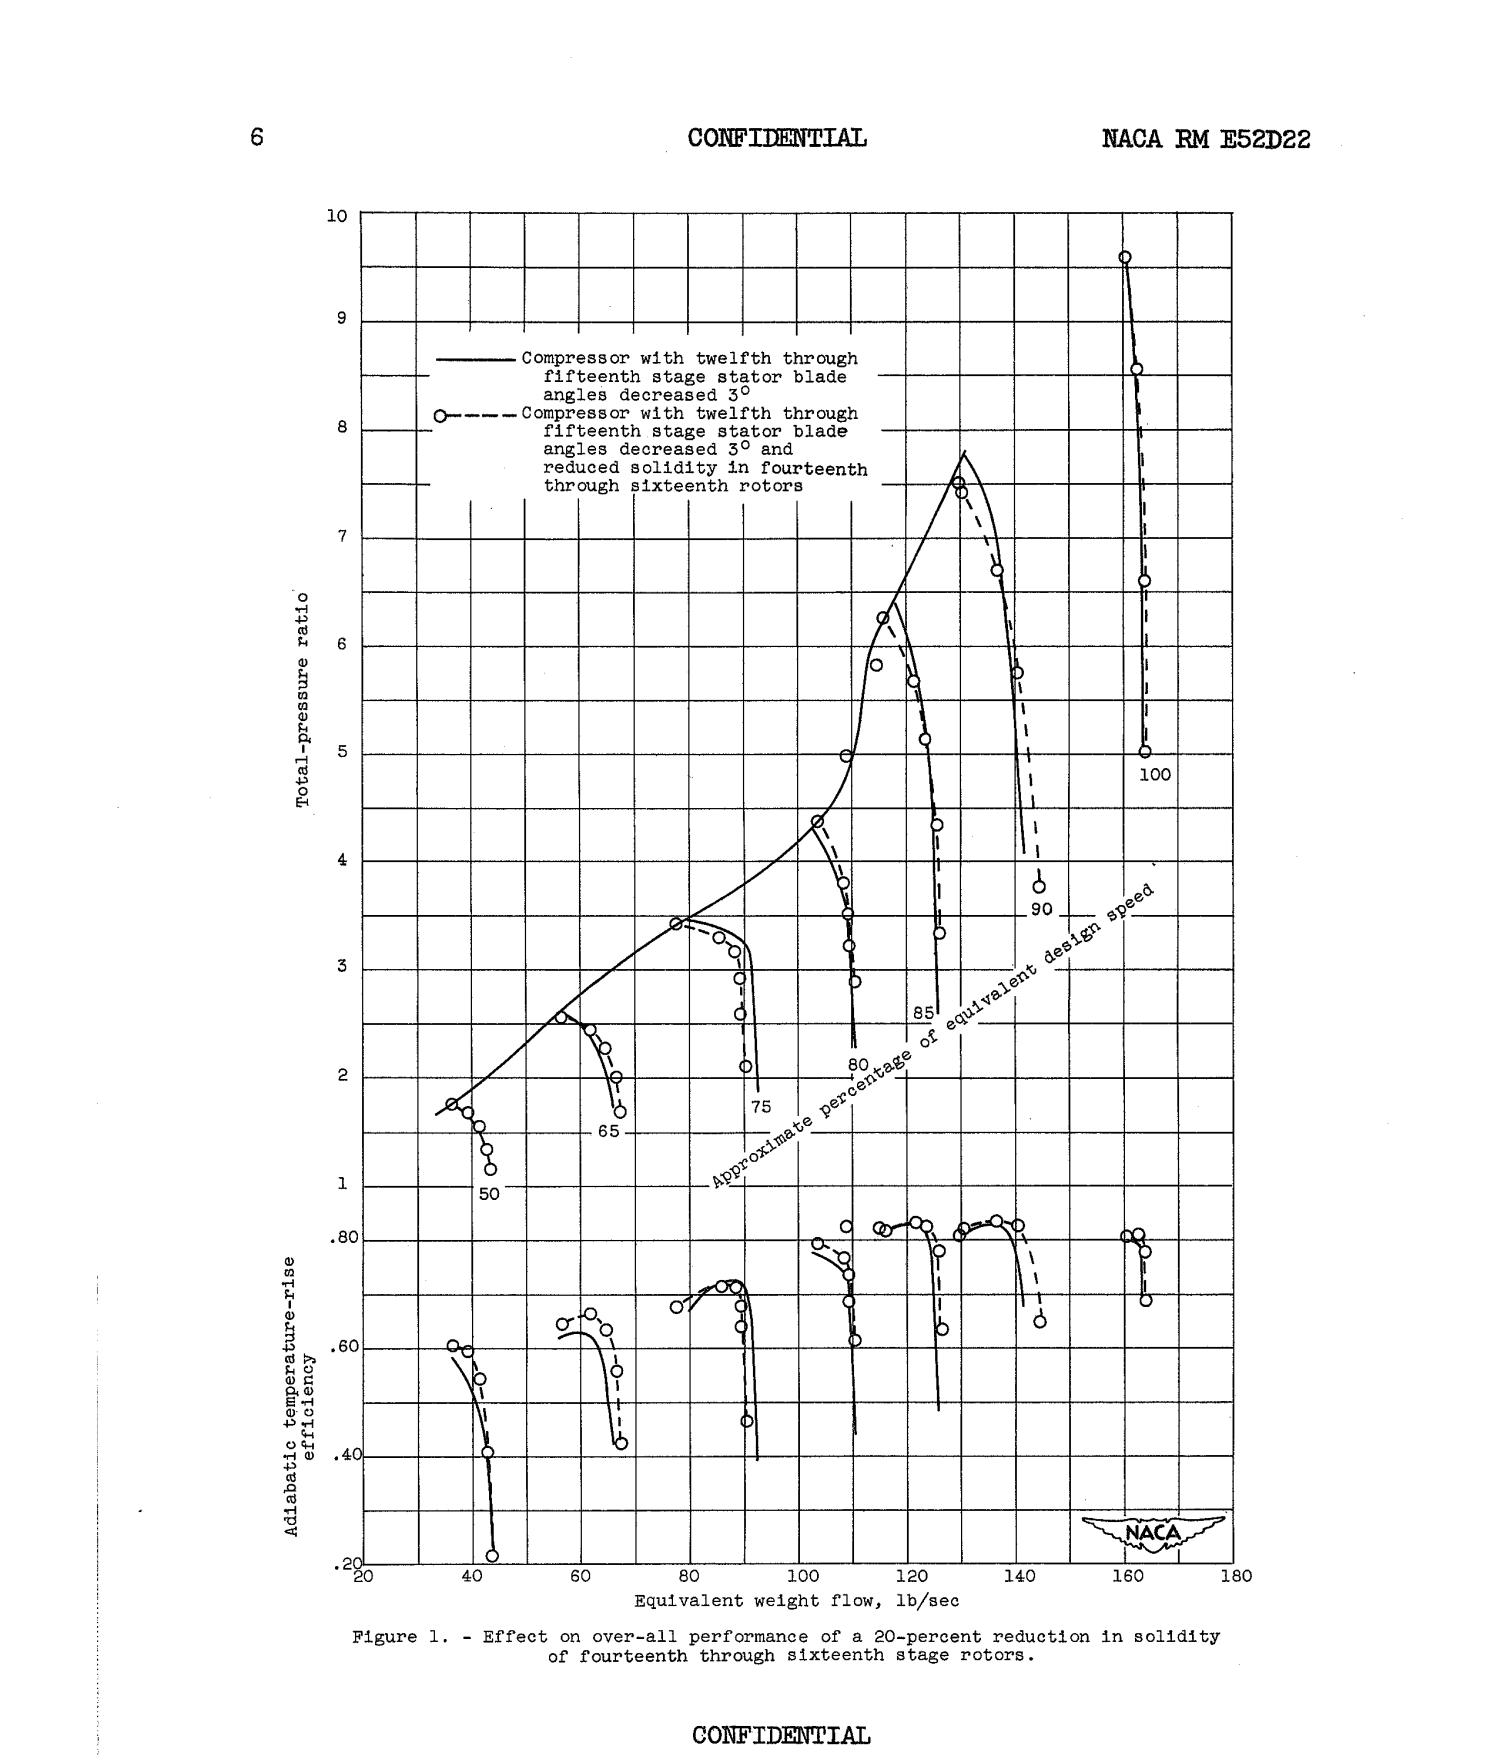 effect of various blade modifications on performance of a 16